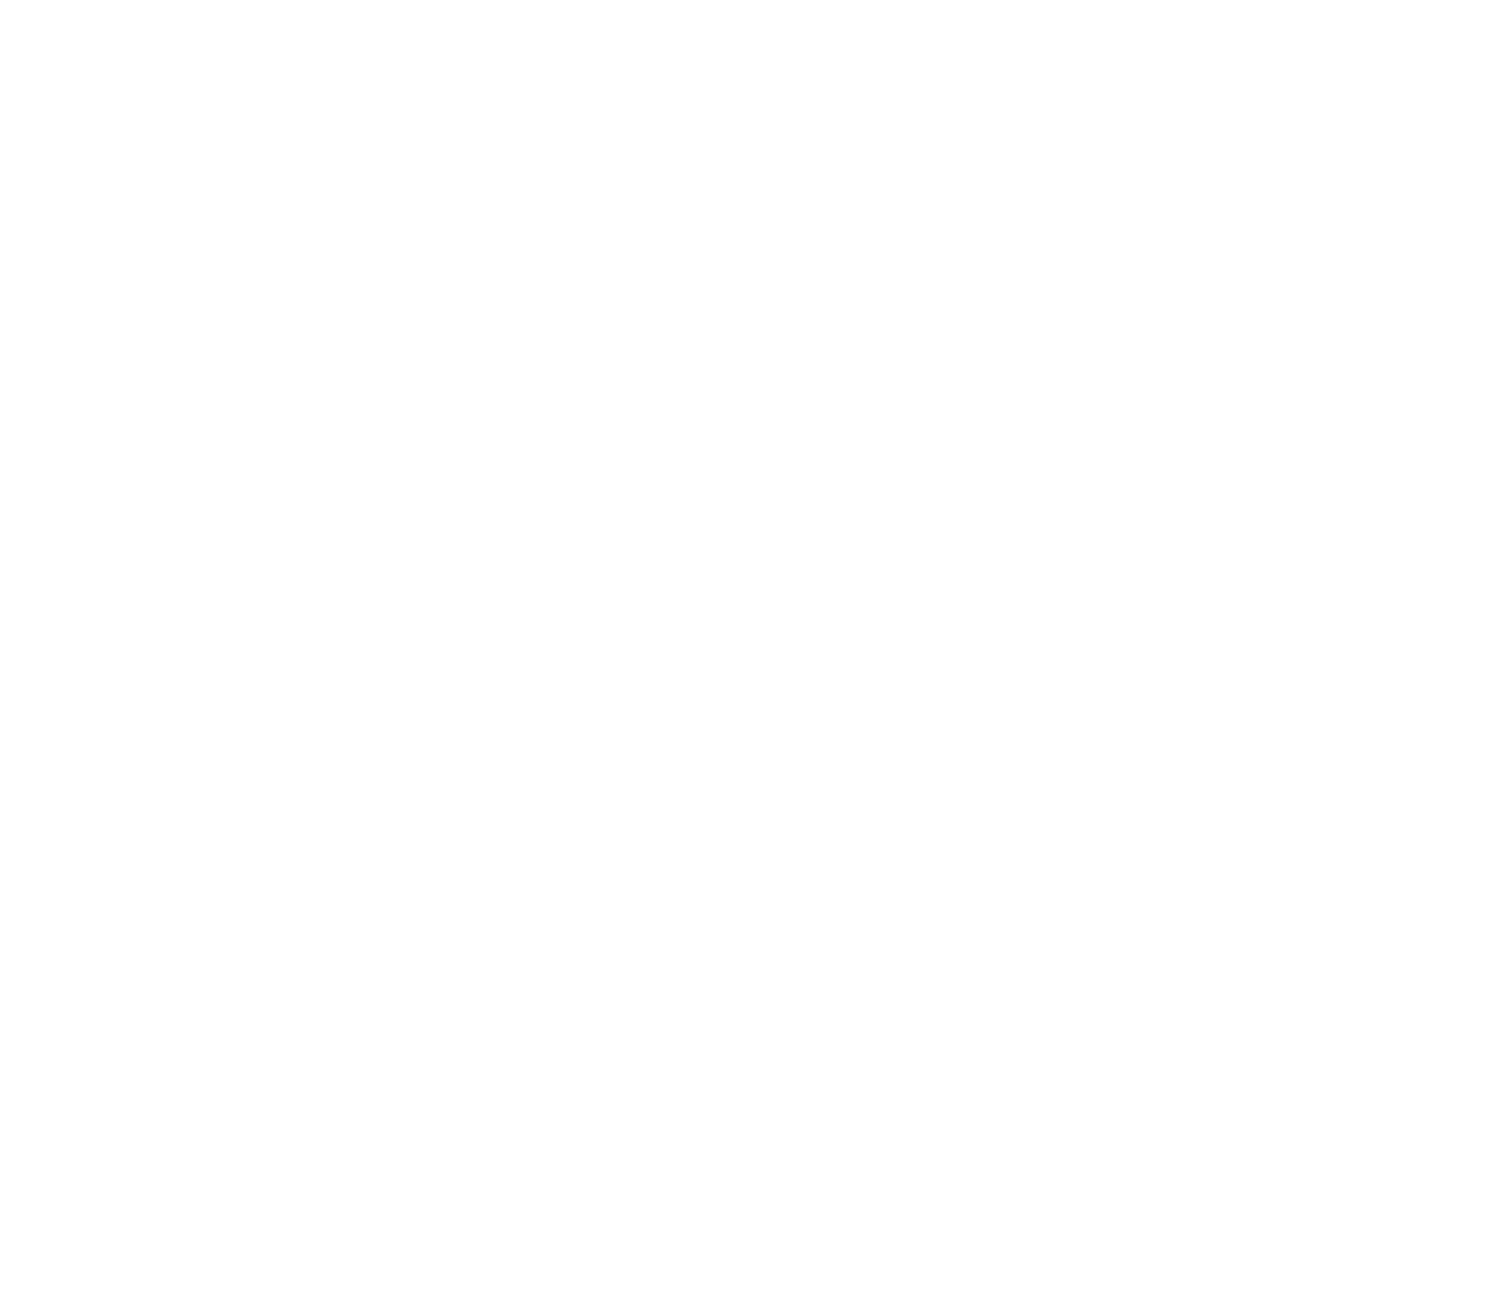 The Bruised Hearts Revue